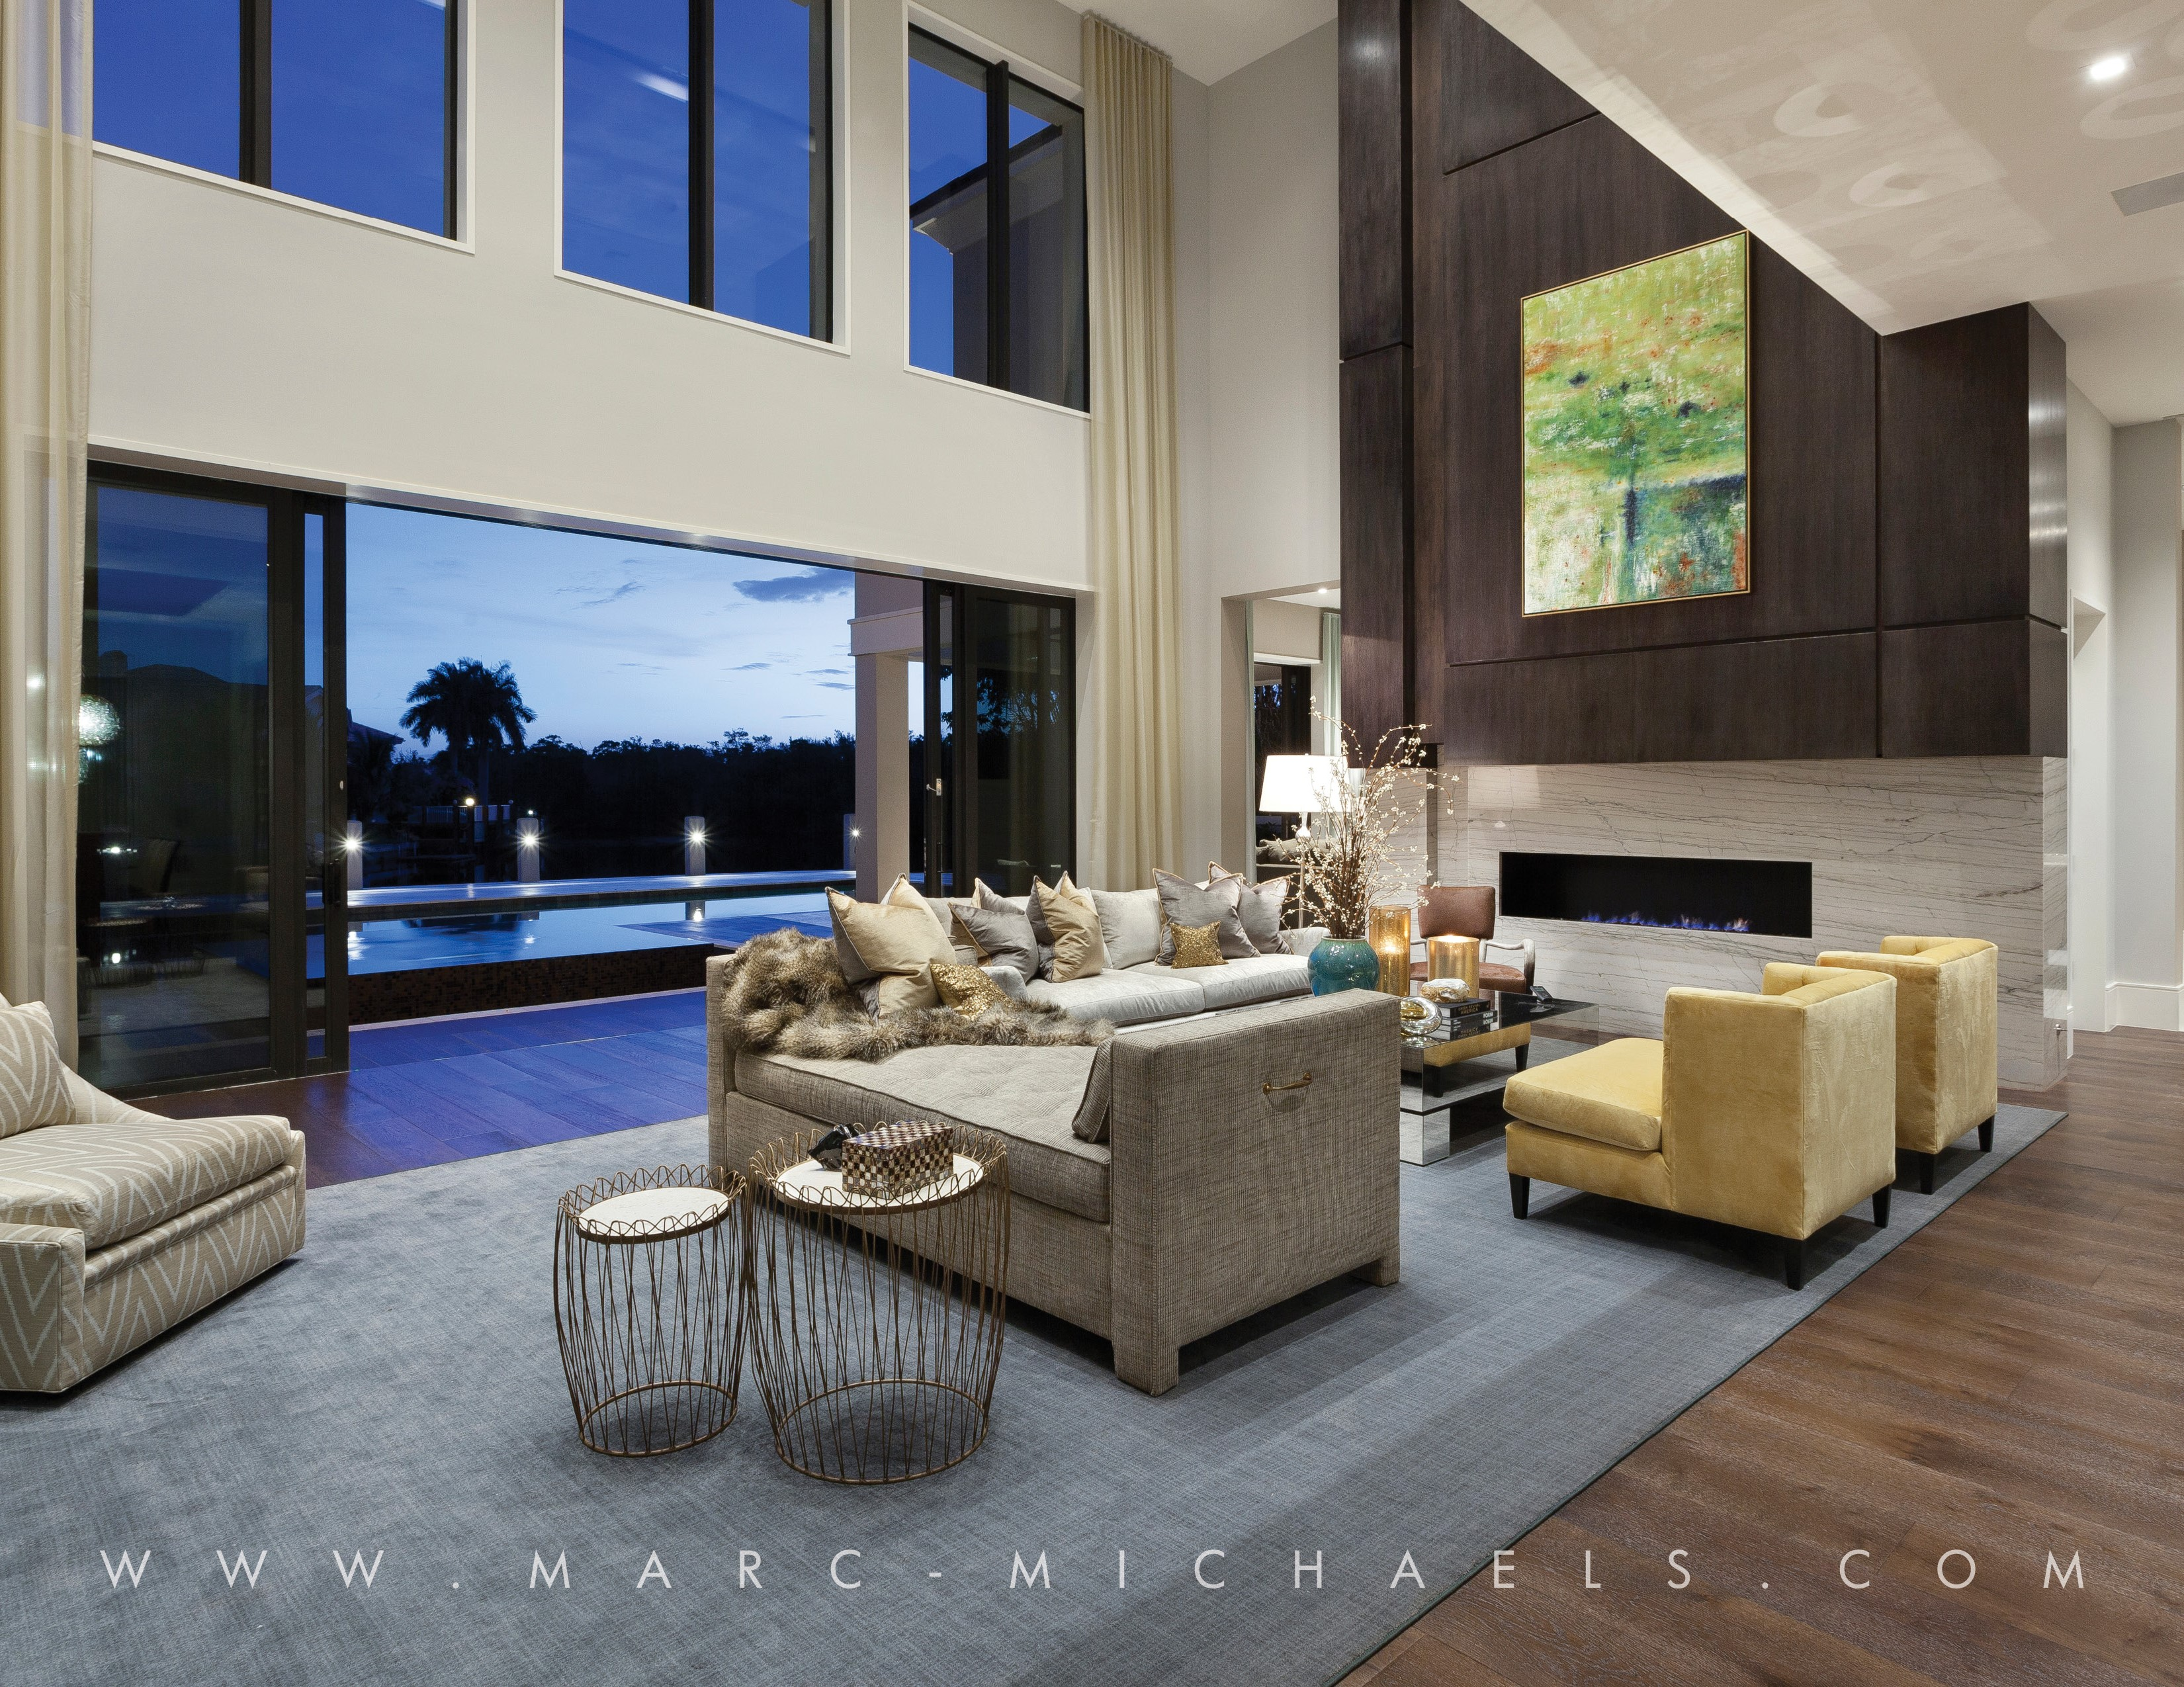 Brand New Boca Raton Home Designed By Marc Michaels Interior Design ...